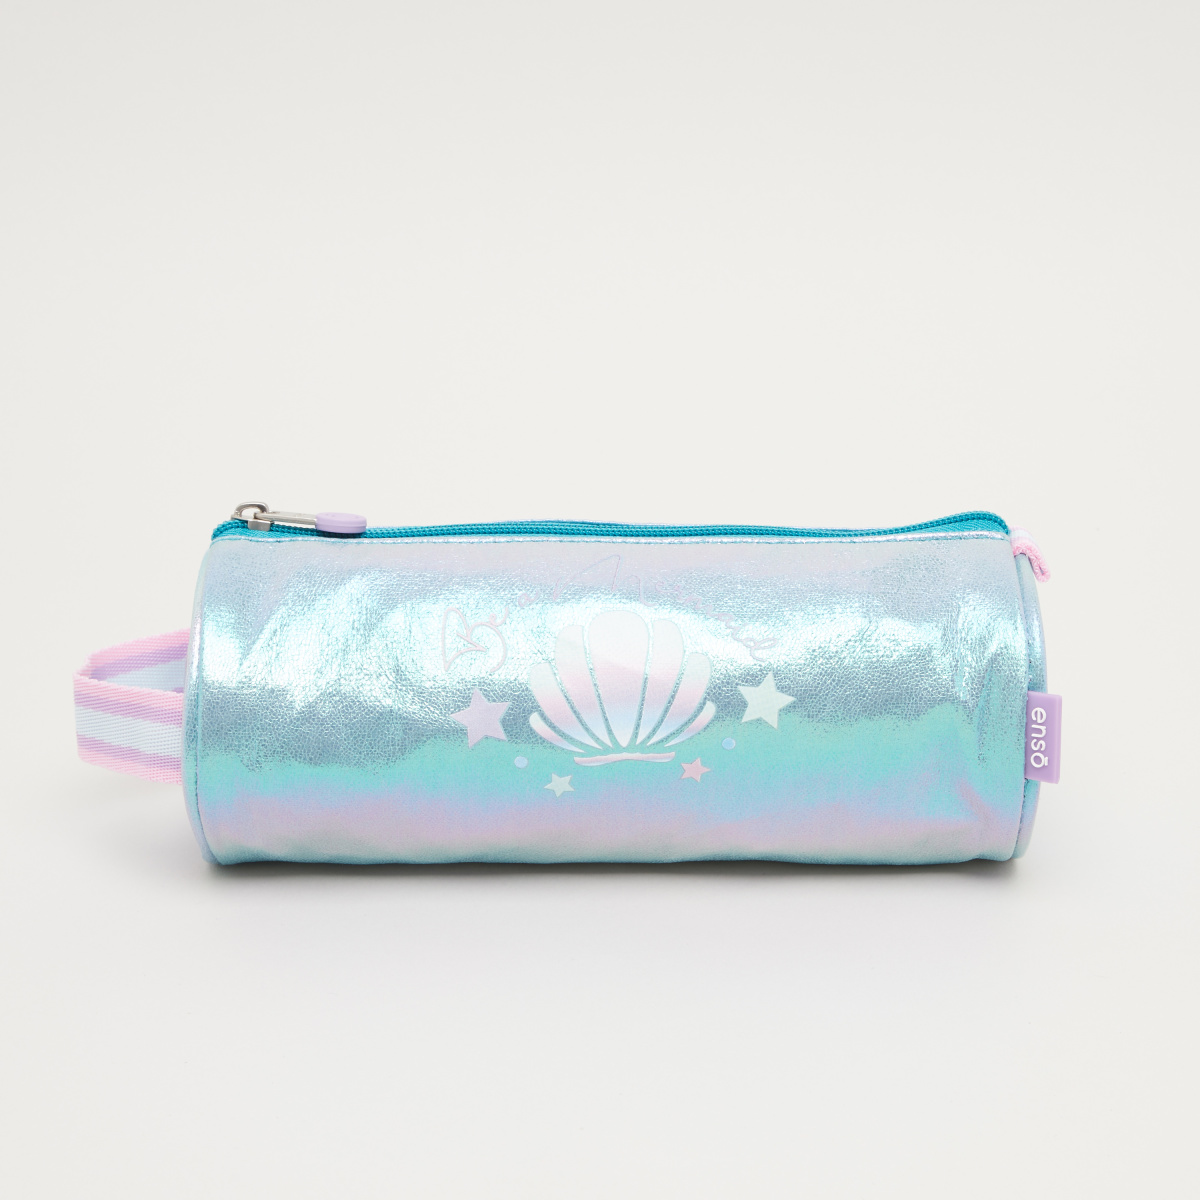 Enso Holographic Round Pencil Case with Grab Handle